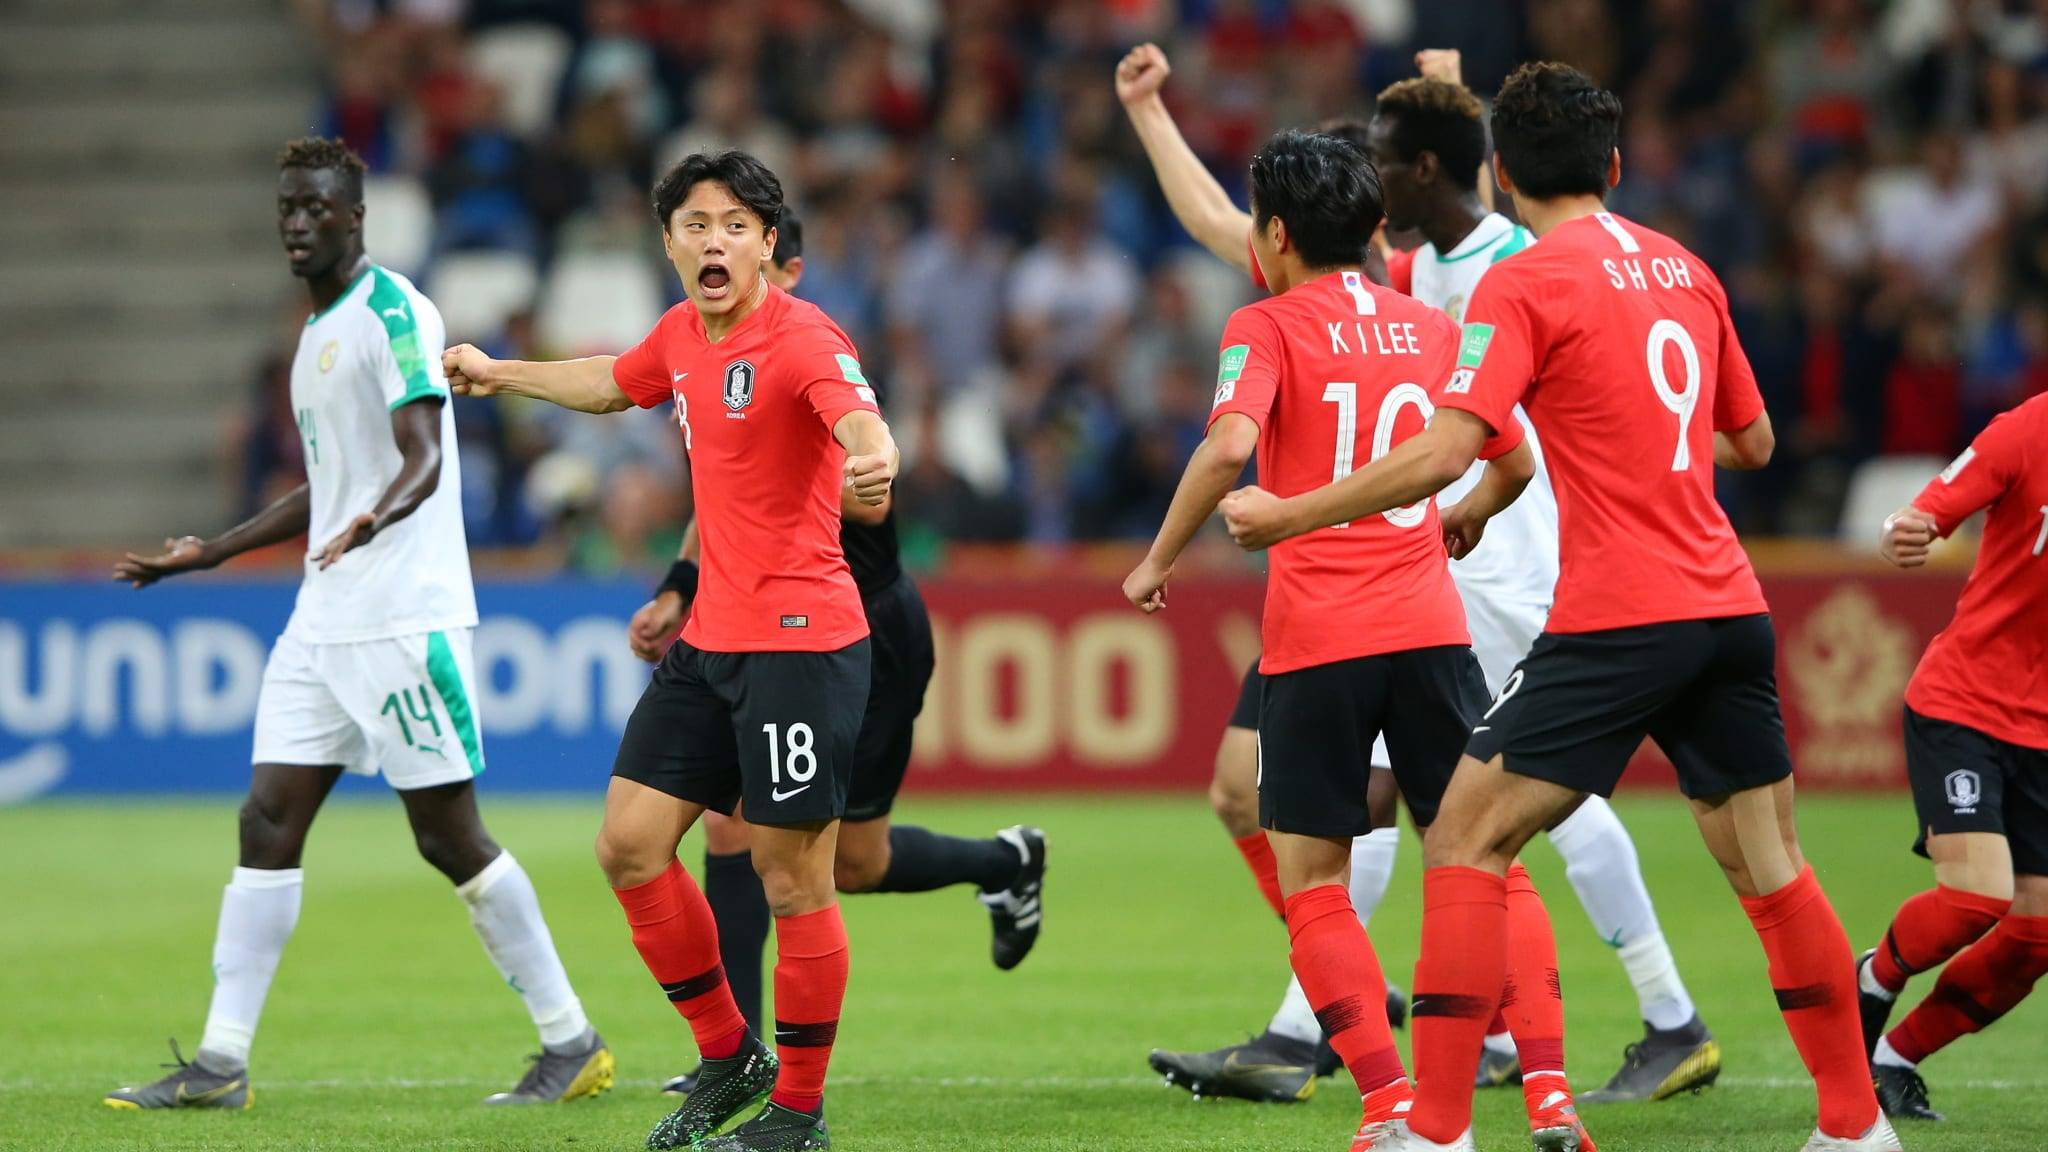 Korea Advance to Semi-Finals of U20 World Cup